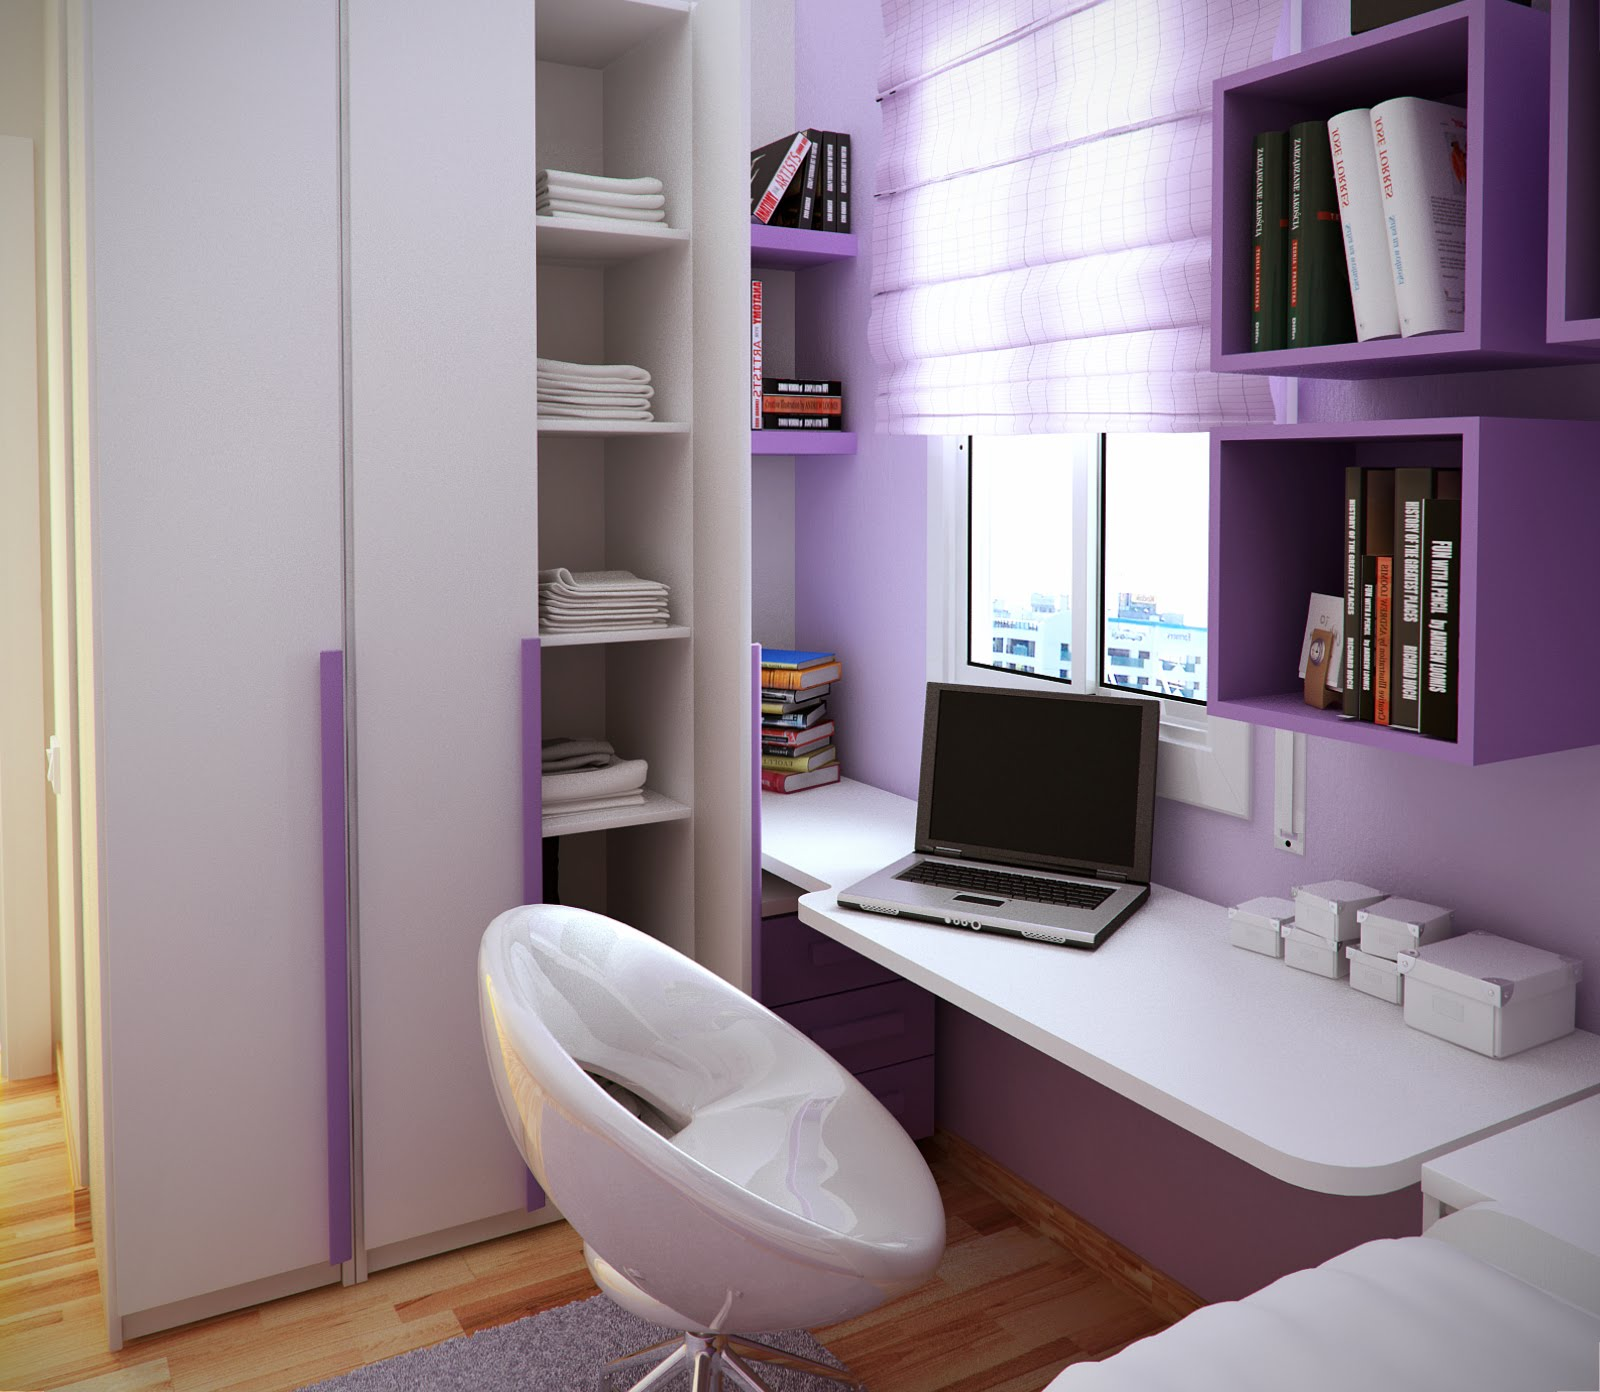 10 Tips on Small Bedroom Interior Design clean cozy atmosphere white interior design space saving solution modern design modern desk and chair